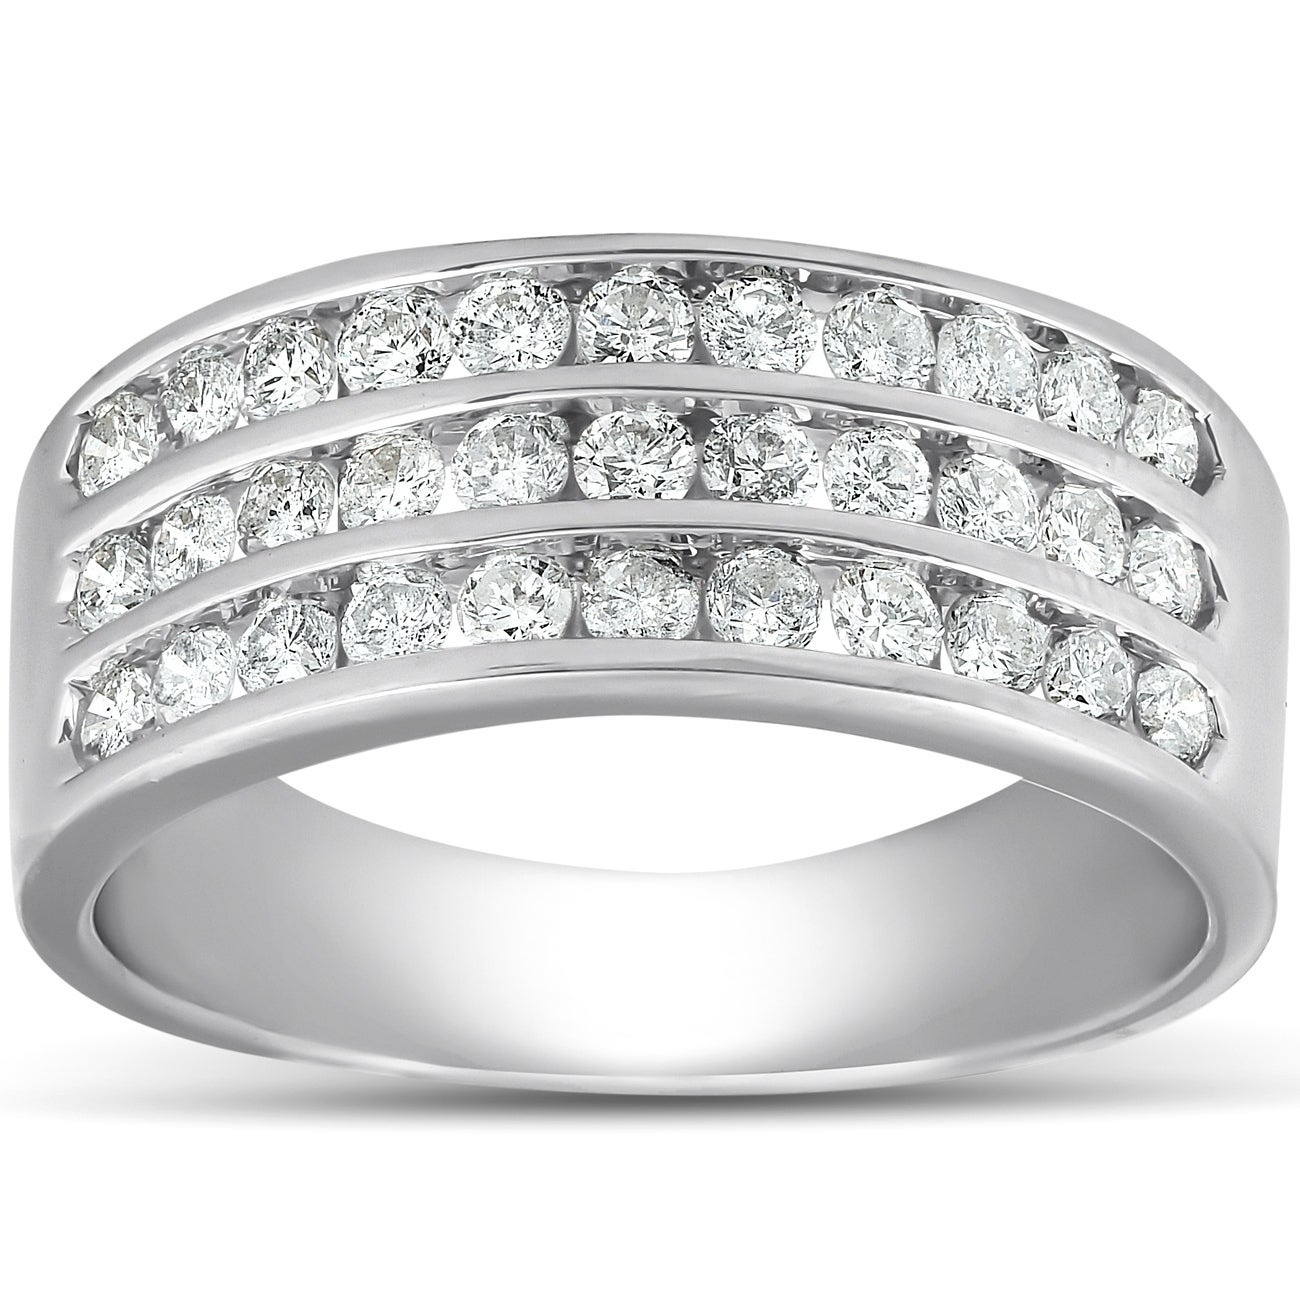 Pompeii3 10k White Gold 1 Ct Tdw Diamond Three Row Channel Set Wedding Ring Womens Anniversary Band For Most Current Diamond Channel Set Anniversary Bands In White Gold (View 6 of 24)